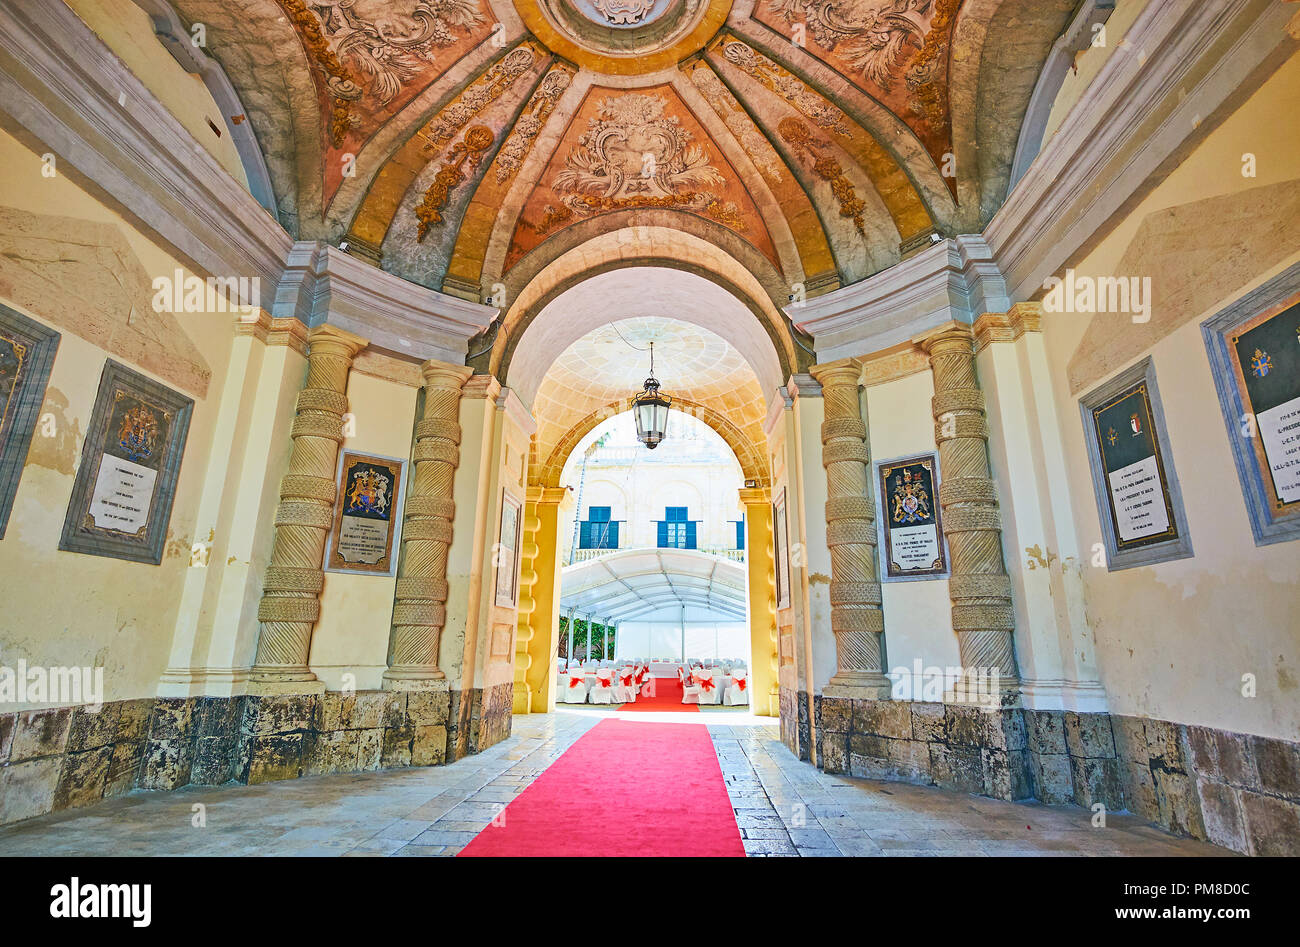 VALLETTA, MALTA - JUNE 17, 2018:  The porch's hall at the main entrance to Grandmaster's Palace with stone columns, coats of arms and beautiful dome,  - Stock Image